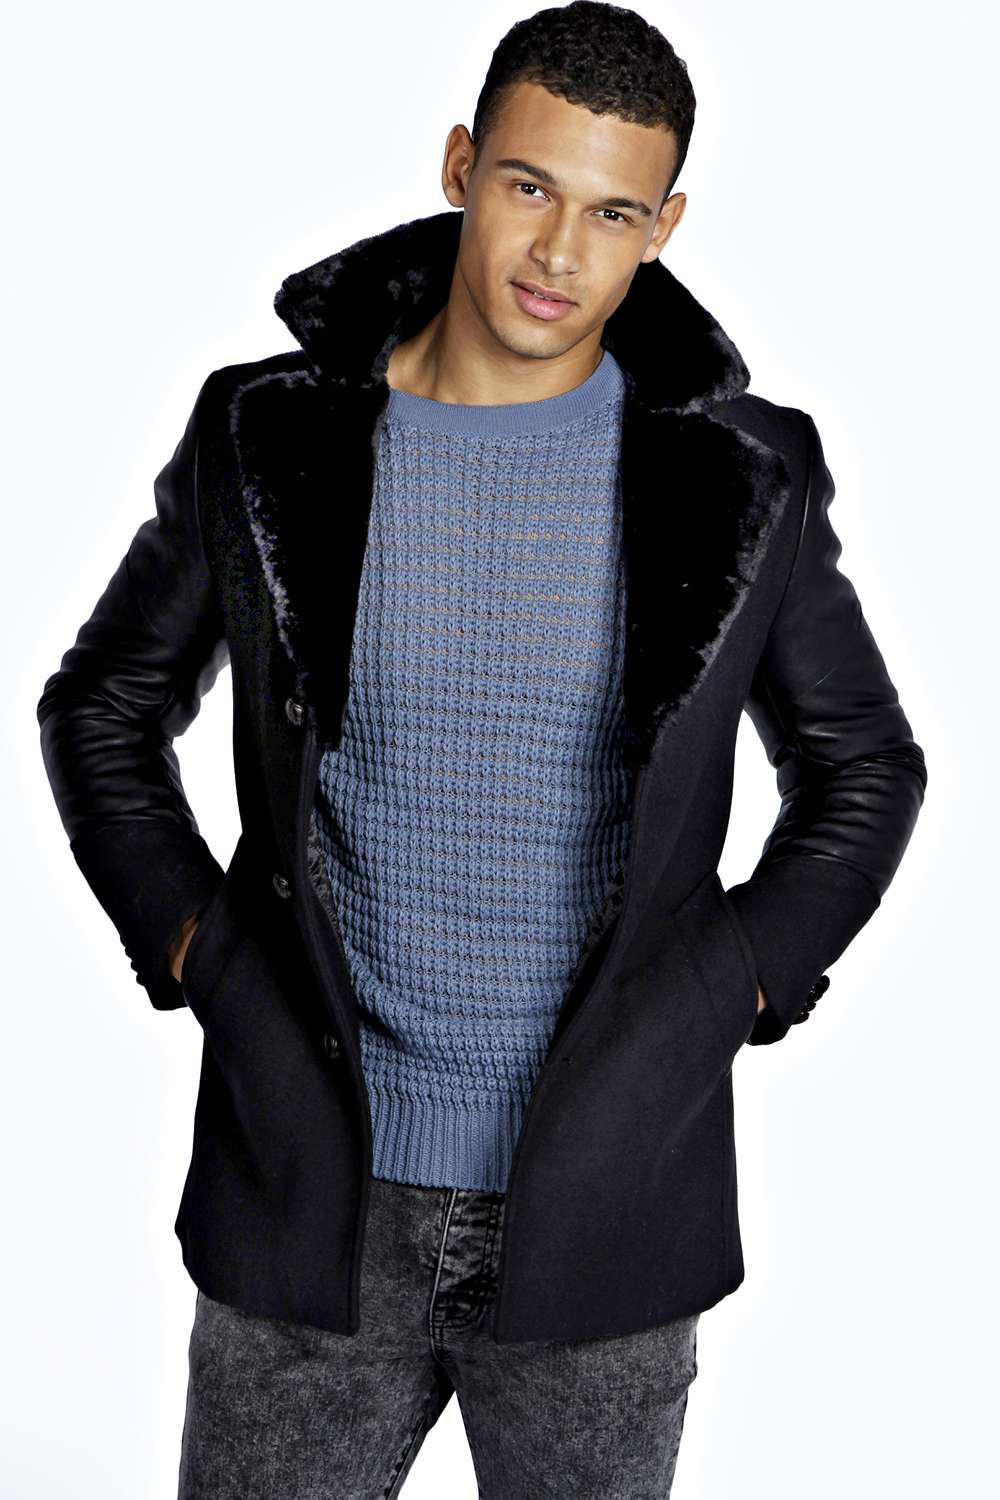 Online shopping for popular & hot Mens Raccoon Fur Parka from Men's Clothing & Accessories, Parkas, Genuine Leather Coats, Down Jackets and more related Mens Raccoon Fur Parka like parka raccoon fur men, men raccoon fur parka, men parka raccoon fur, men's raccoon fur parka. Discover over of the best Selection Mens Raccoon Fur Parka on desire-date.tk